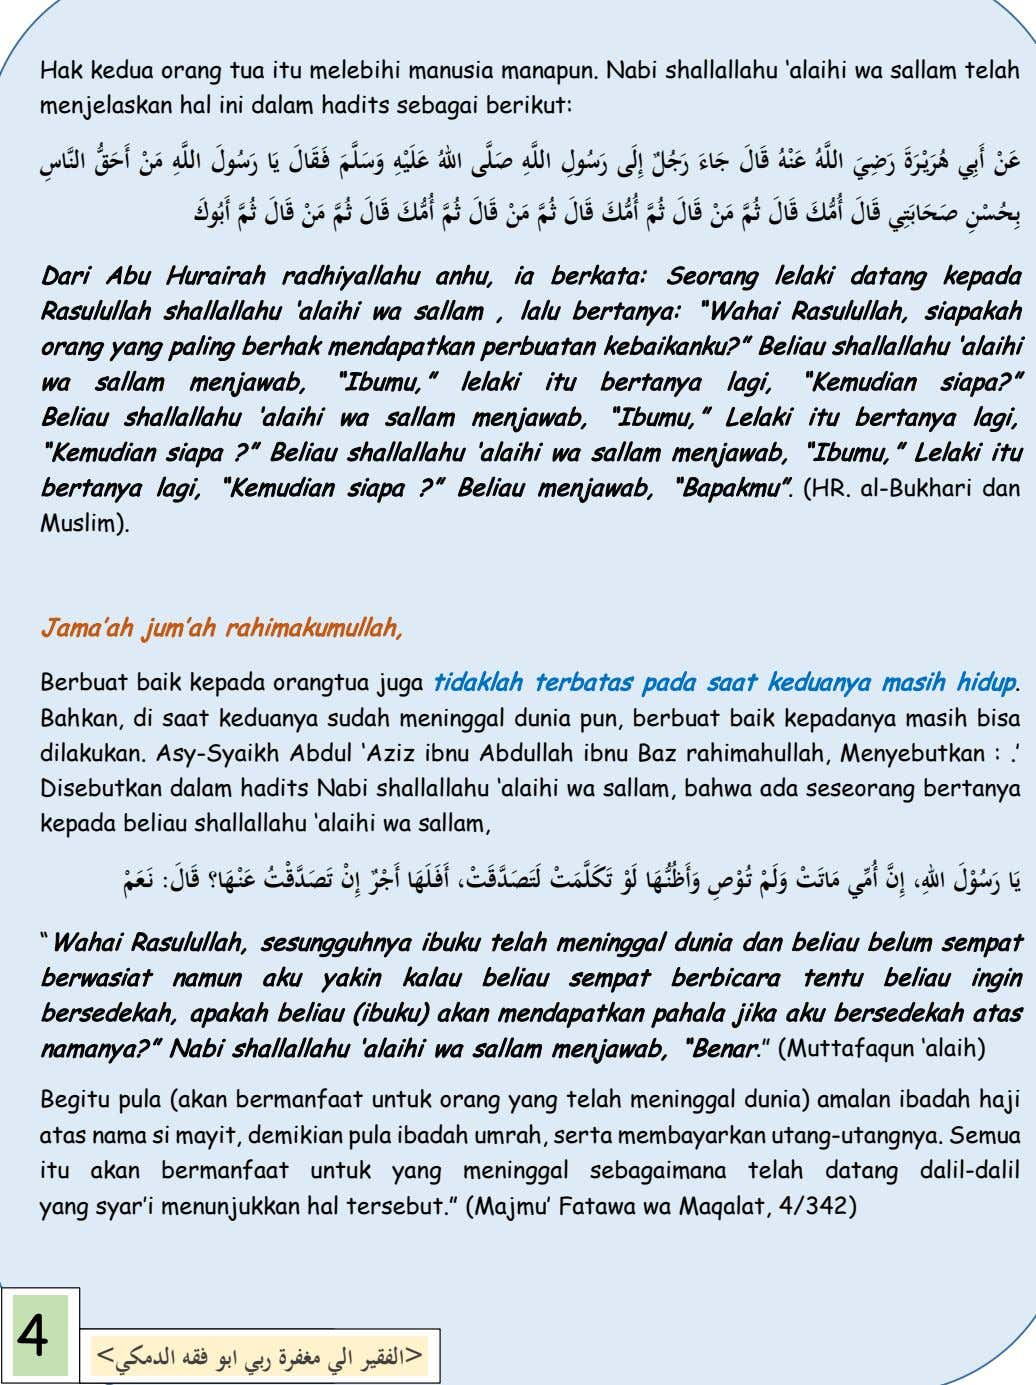 [Grab your reader's attention with a great quote from the document Hak kedua orang tua